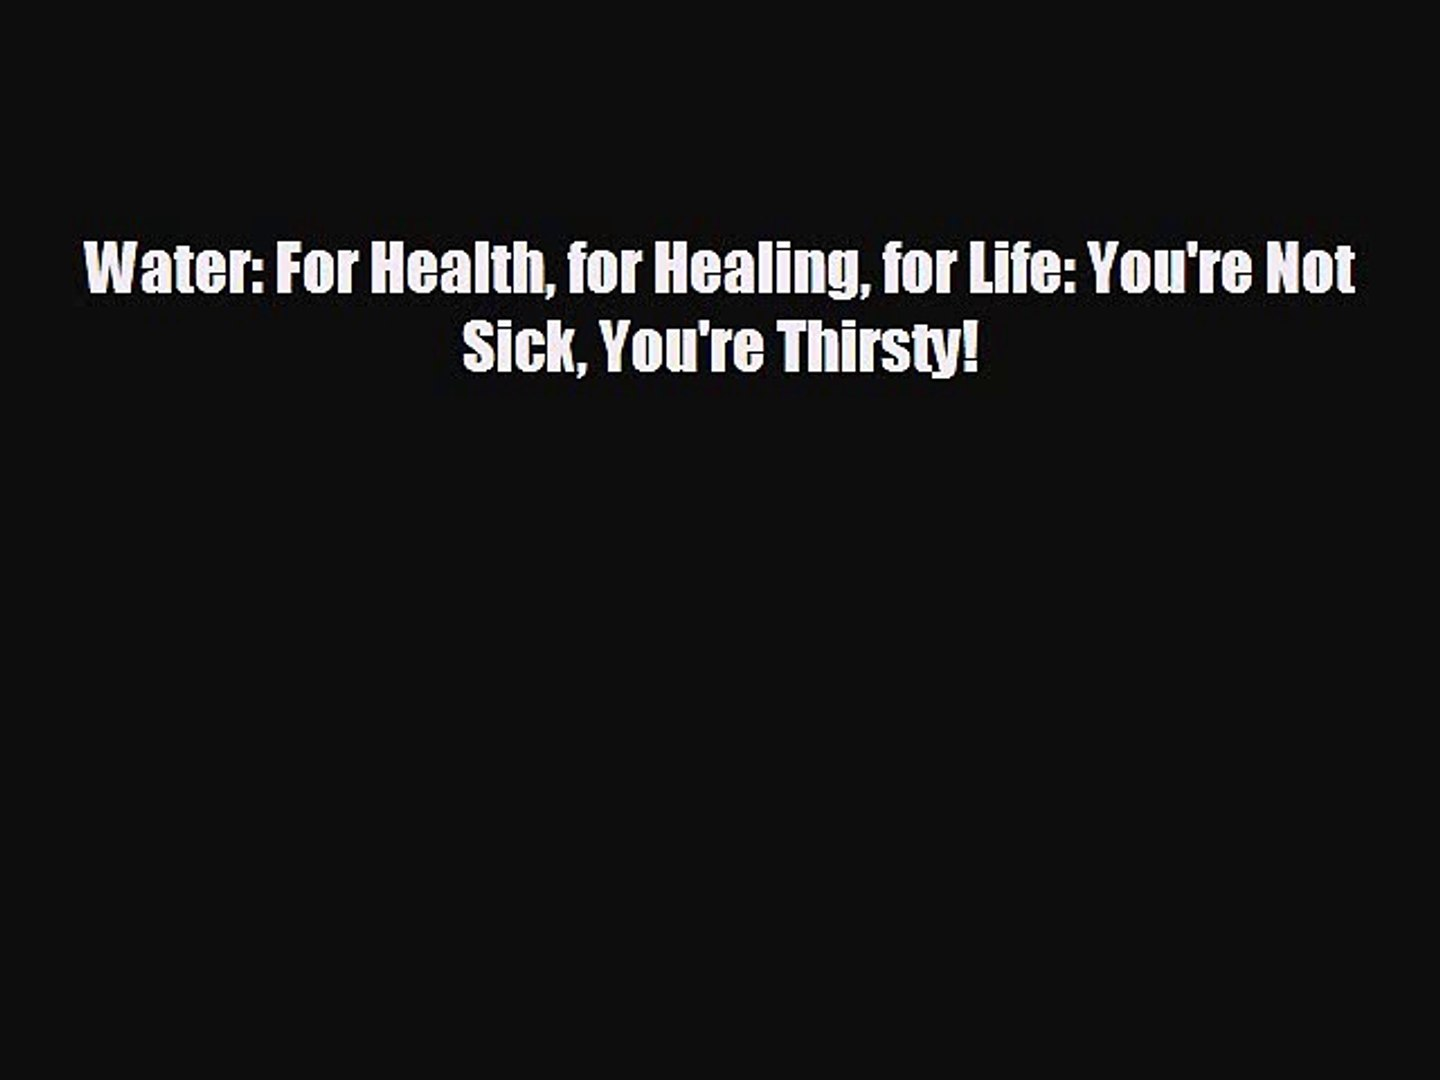 different  Water: For Health for Healing for Life: You're Not Sick You're Thirsty!